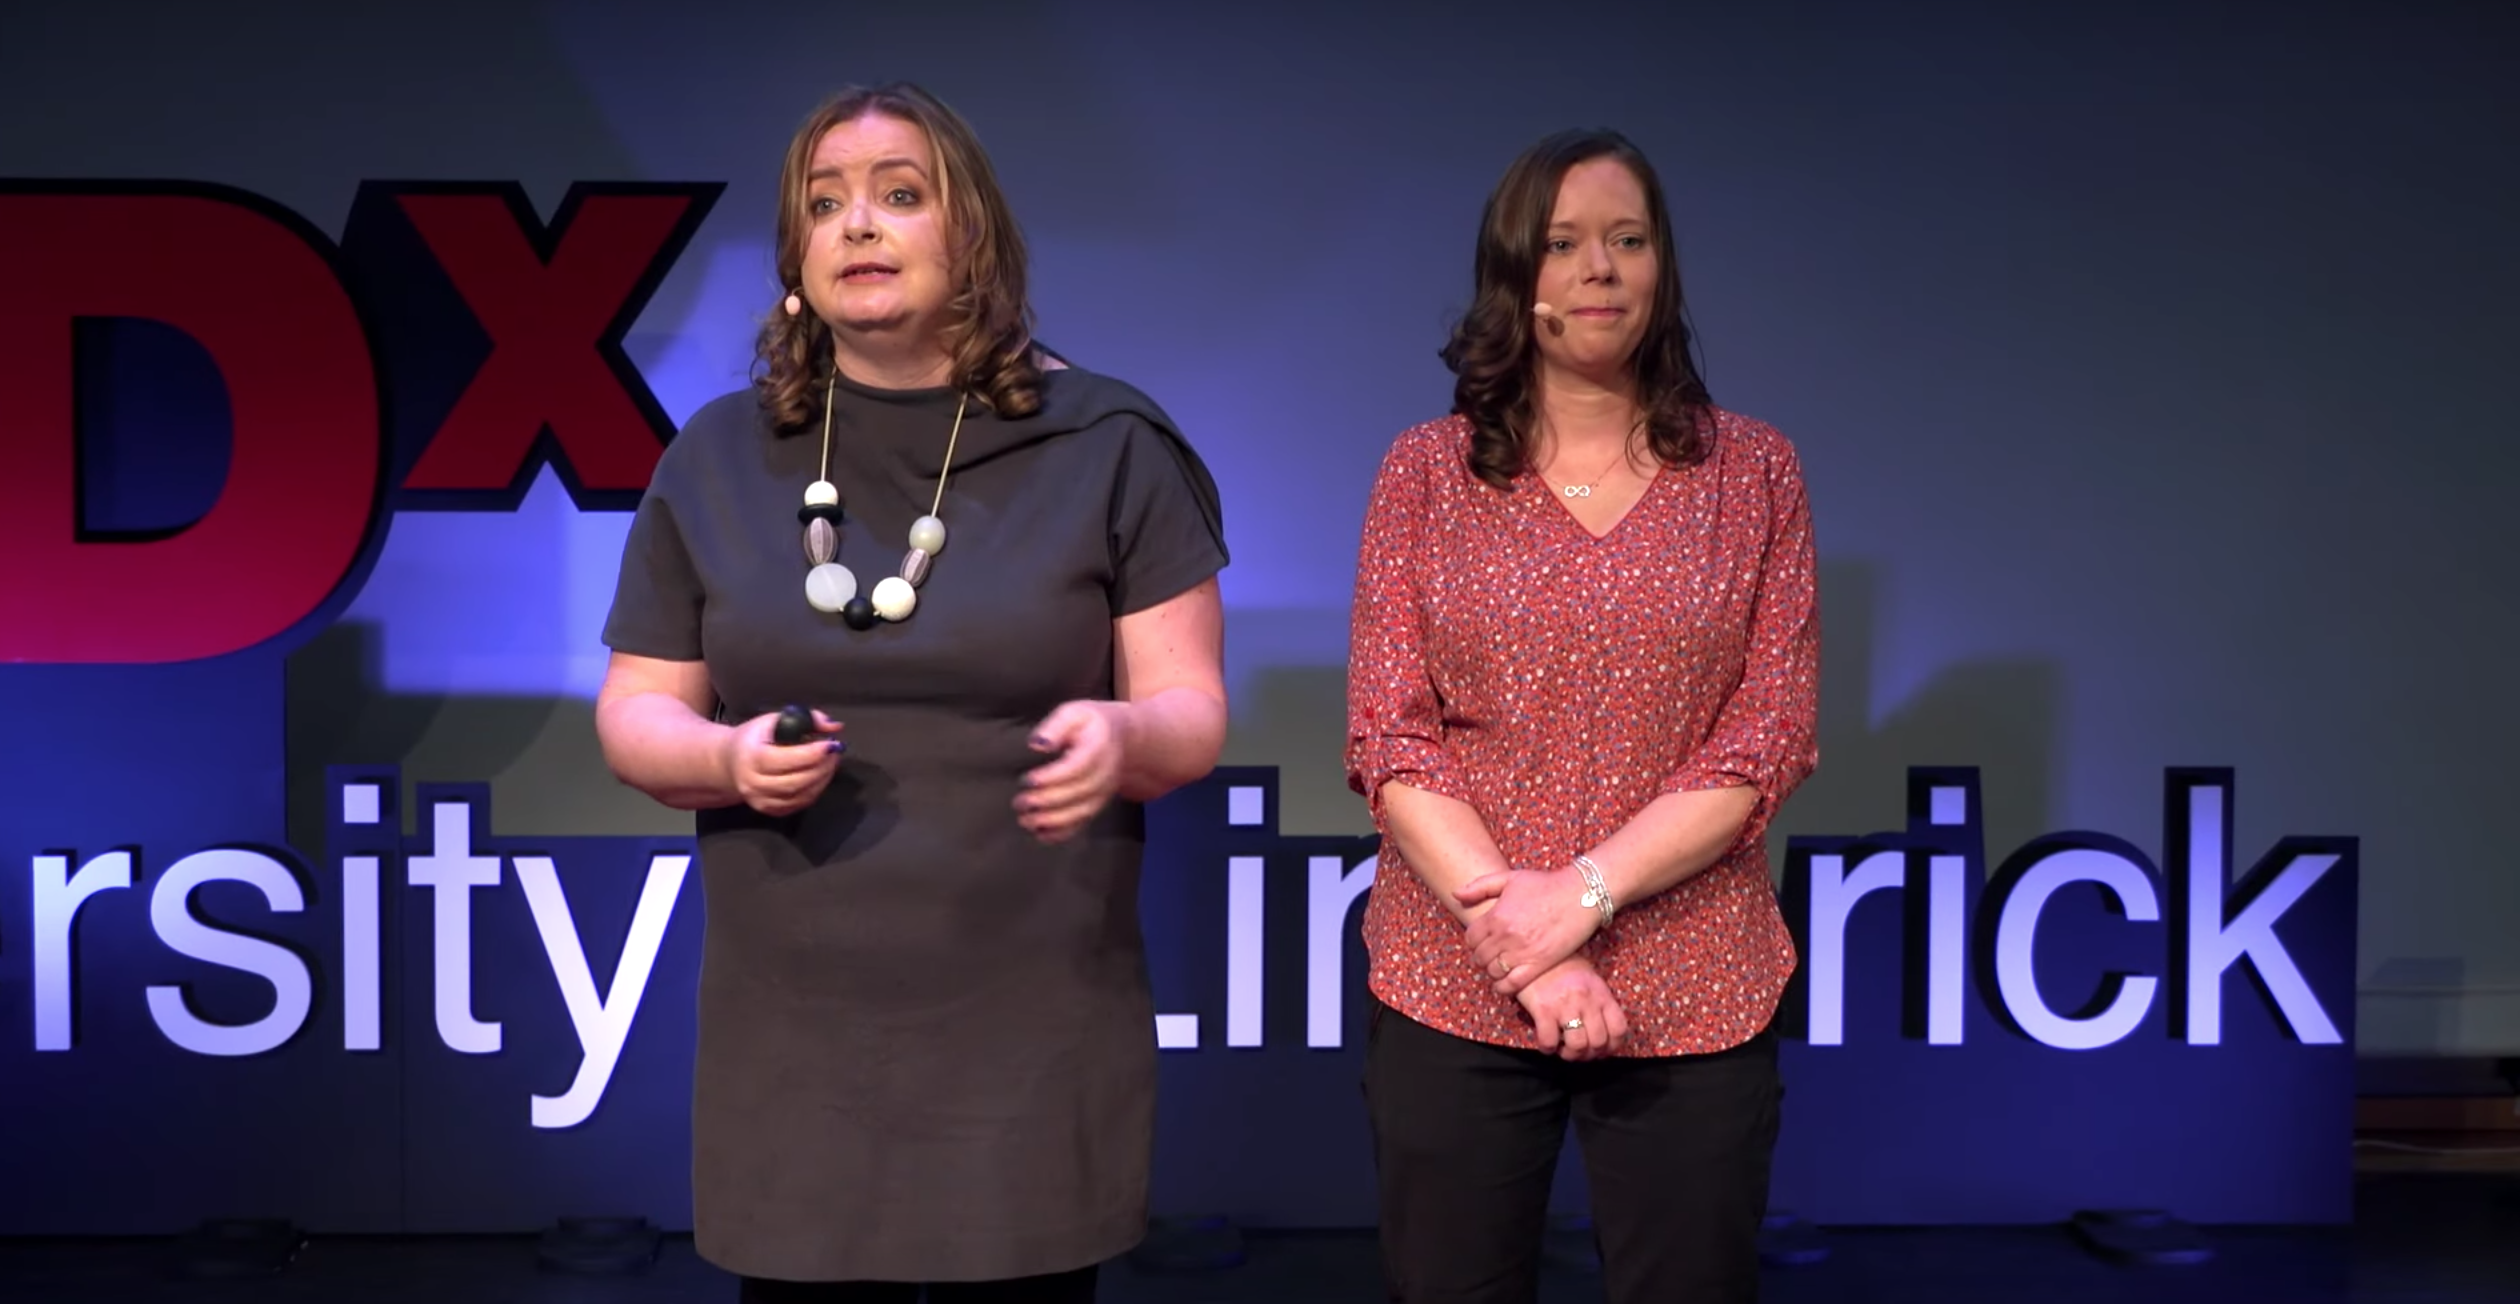 TEDx Limerick - Mairin Murray and Ellen Ward on stage